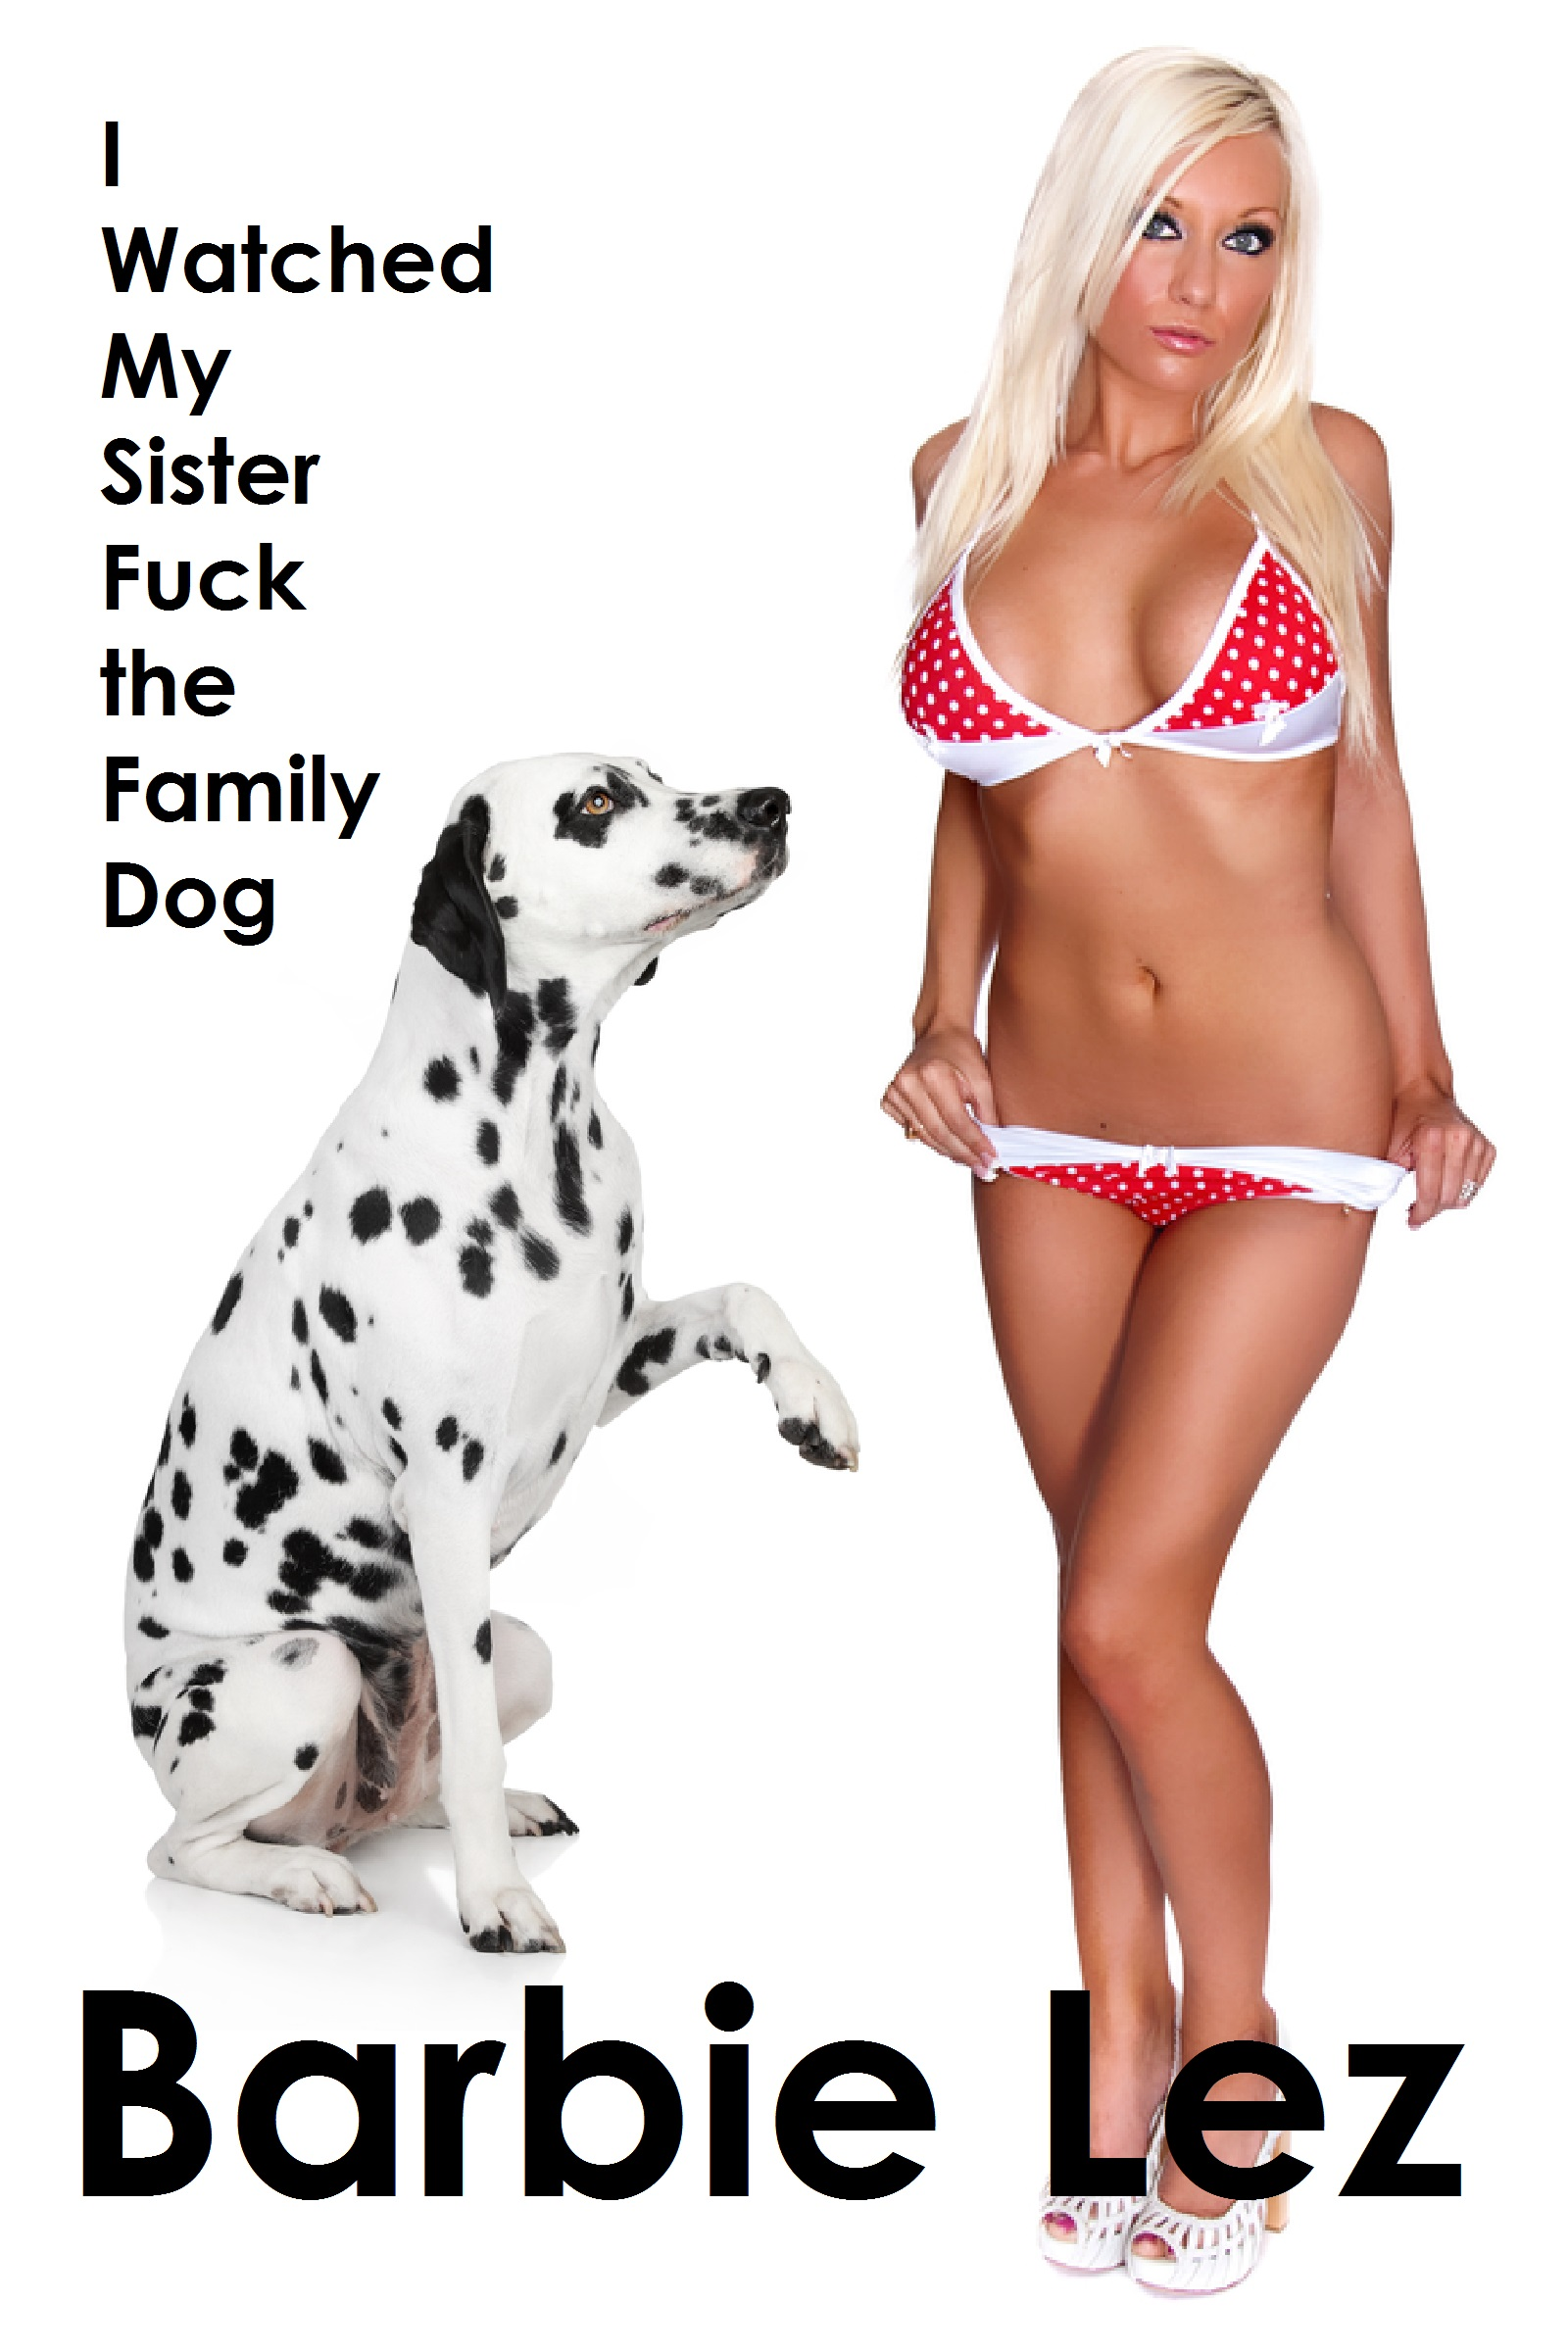 family beastiality I Watched My Sister Fuck the Family Dog (Bestiality)